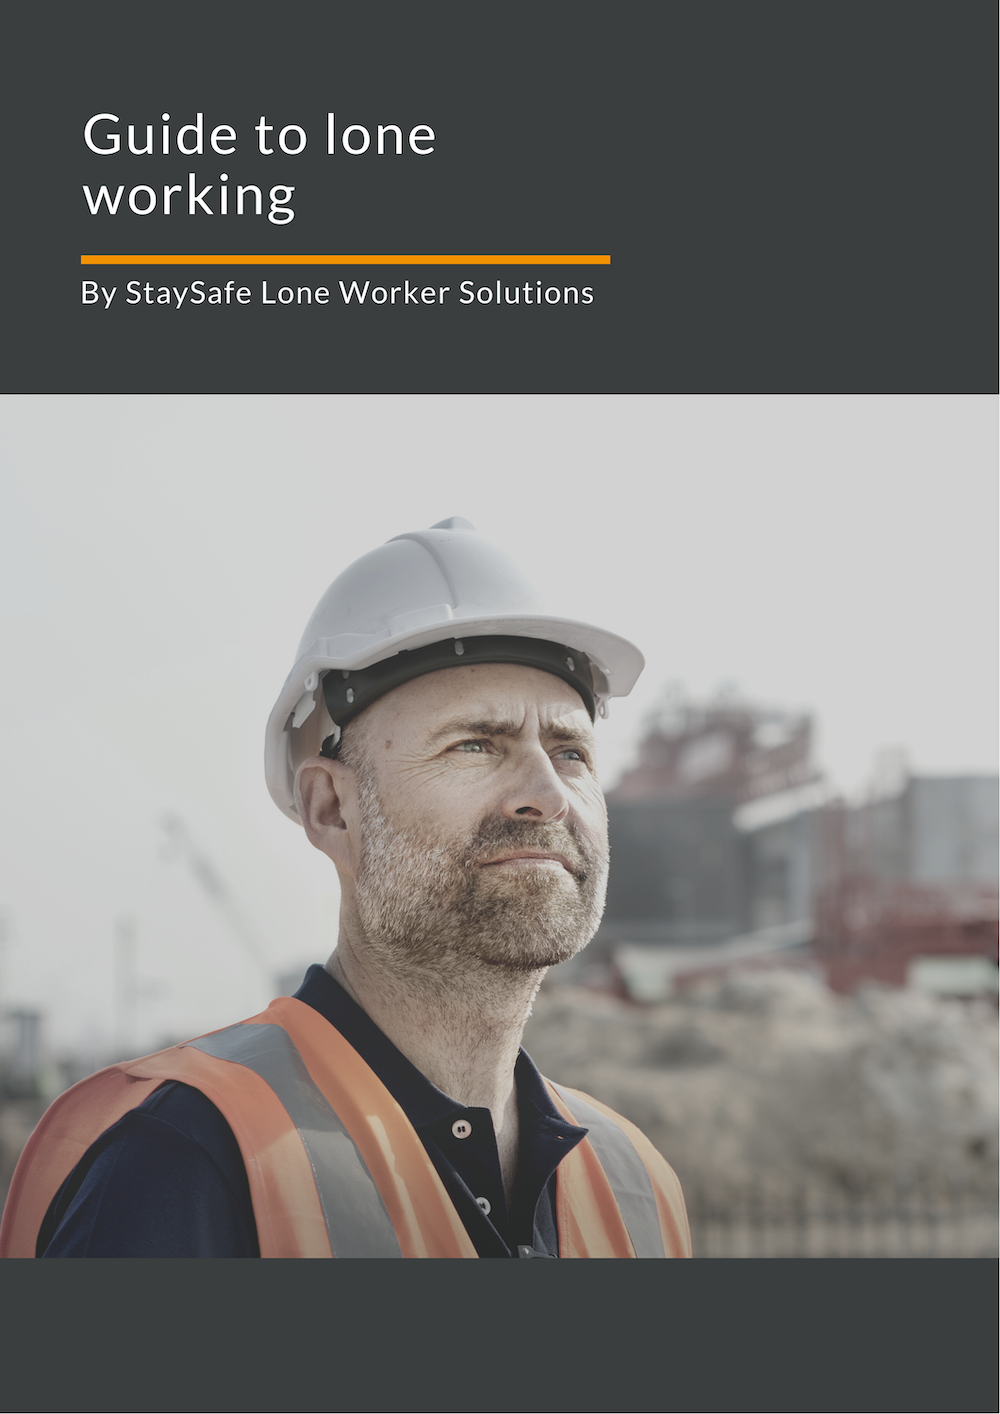 Guide to lone worker safety